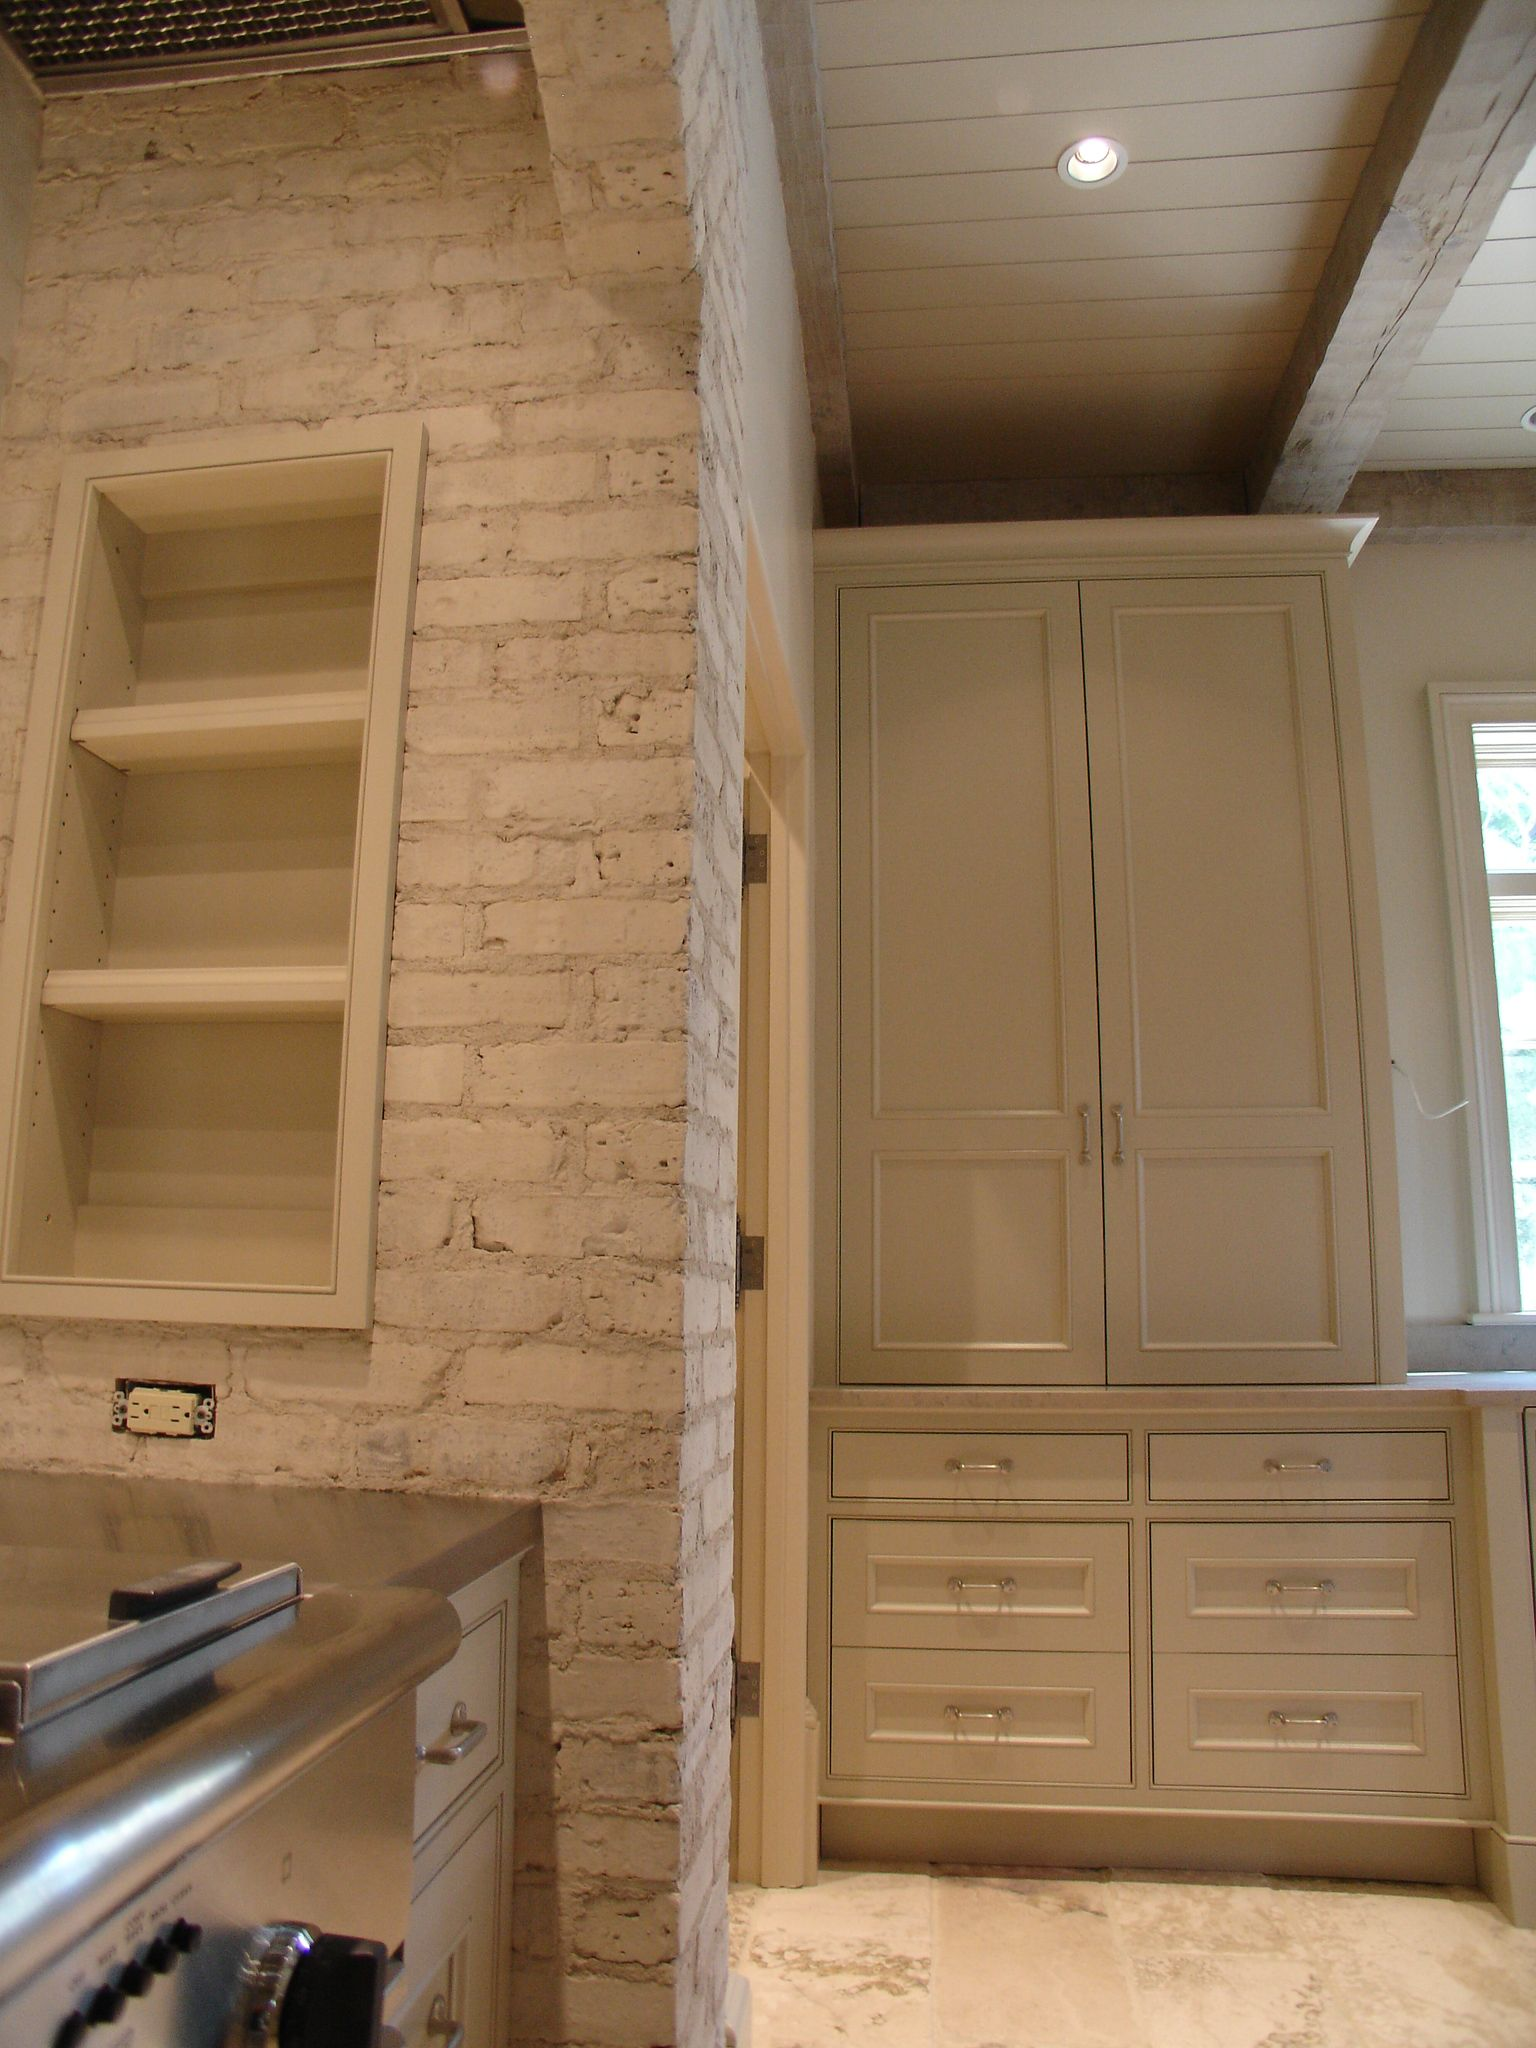 1000+ images about Inspiring Limewash Applications on Pinterest